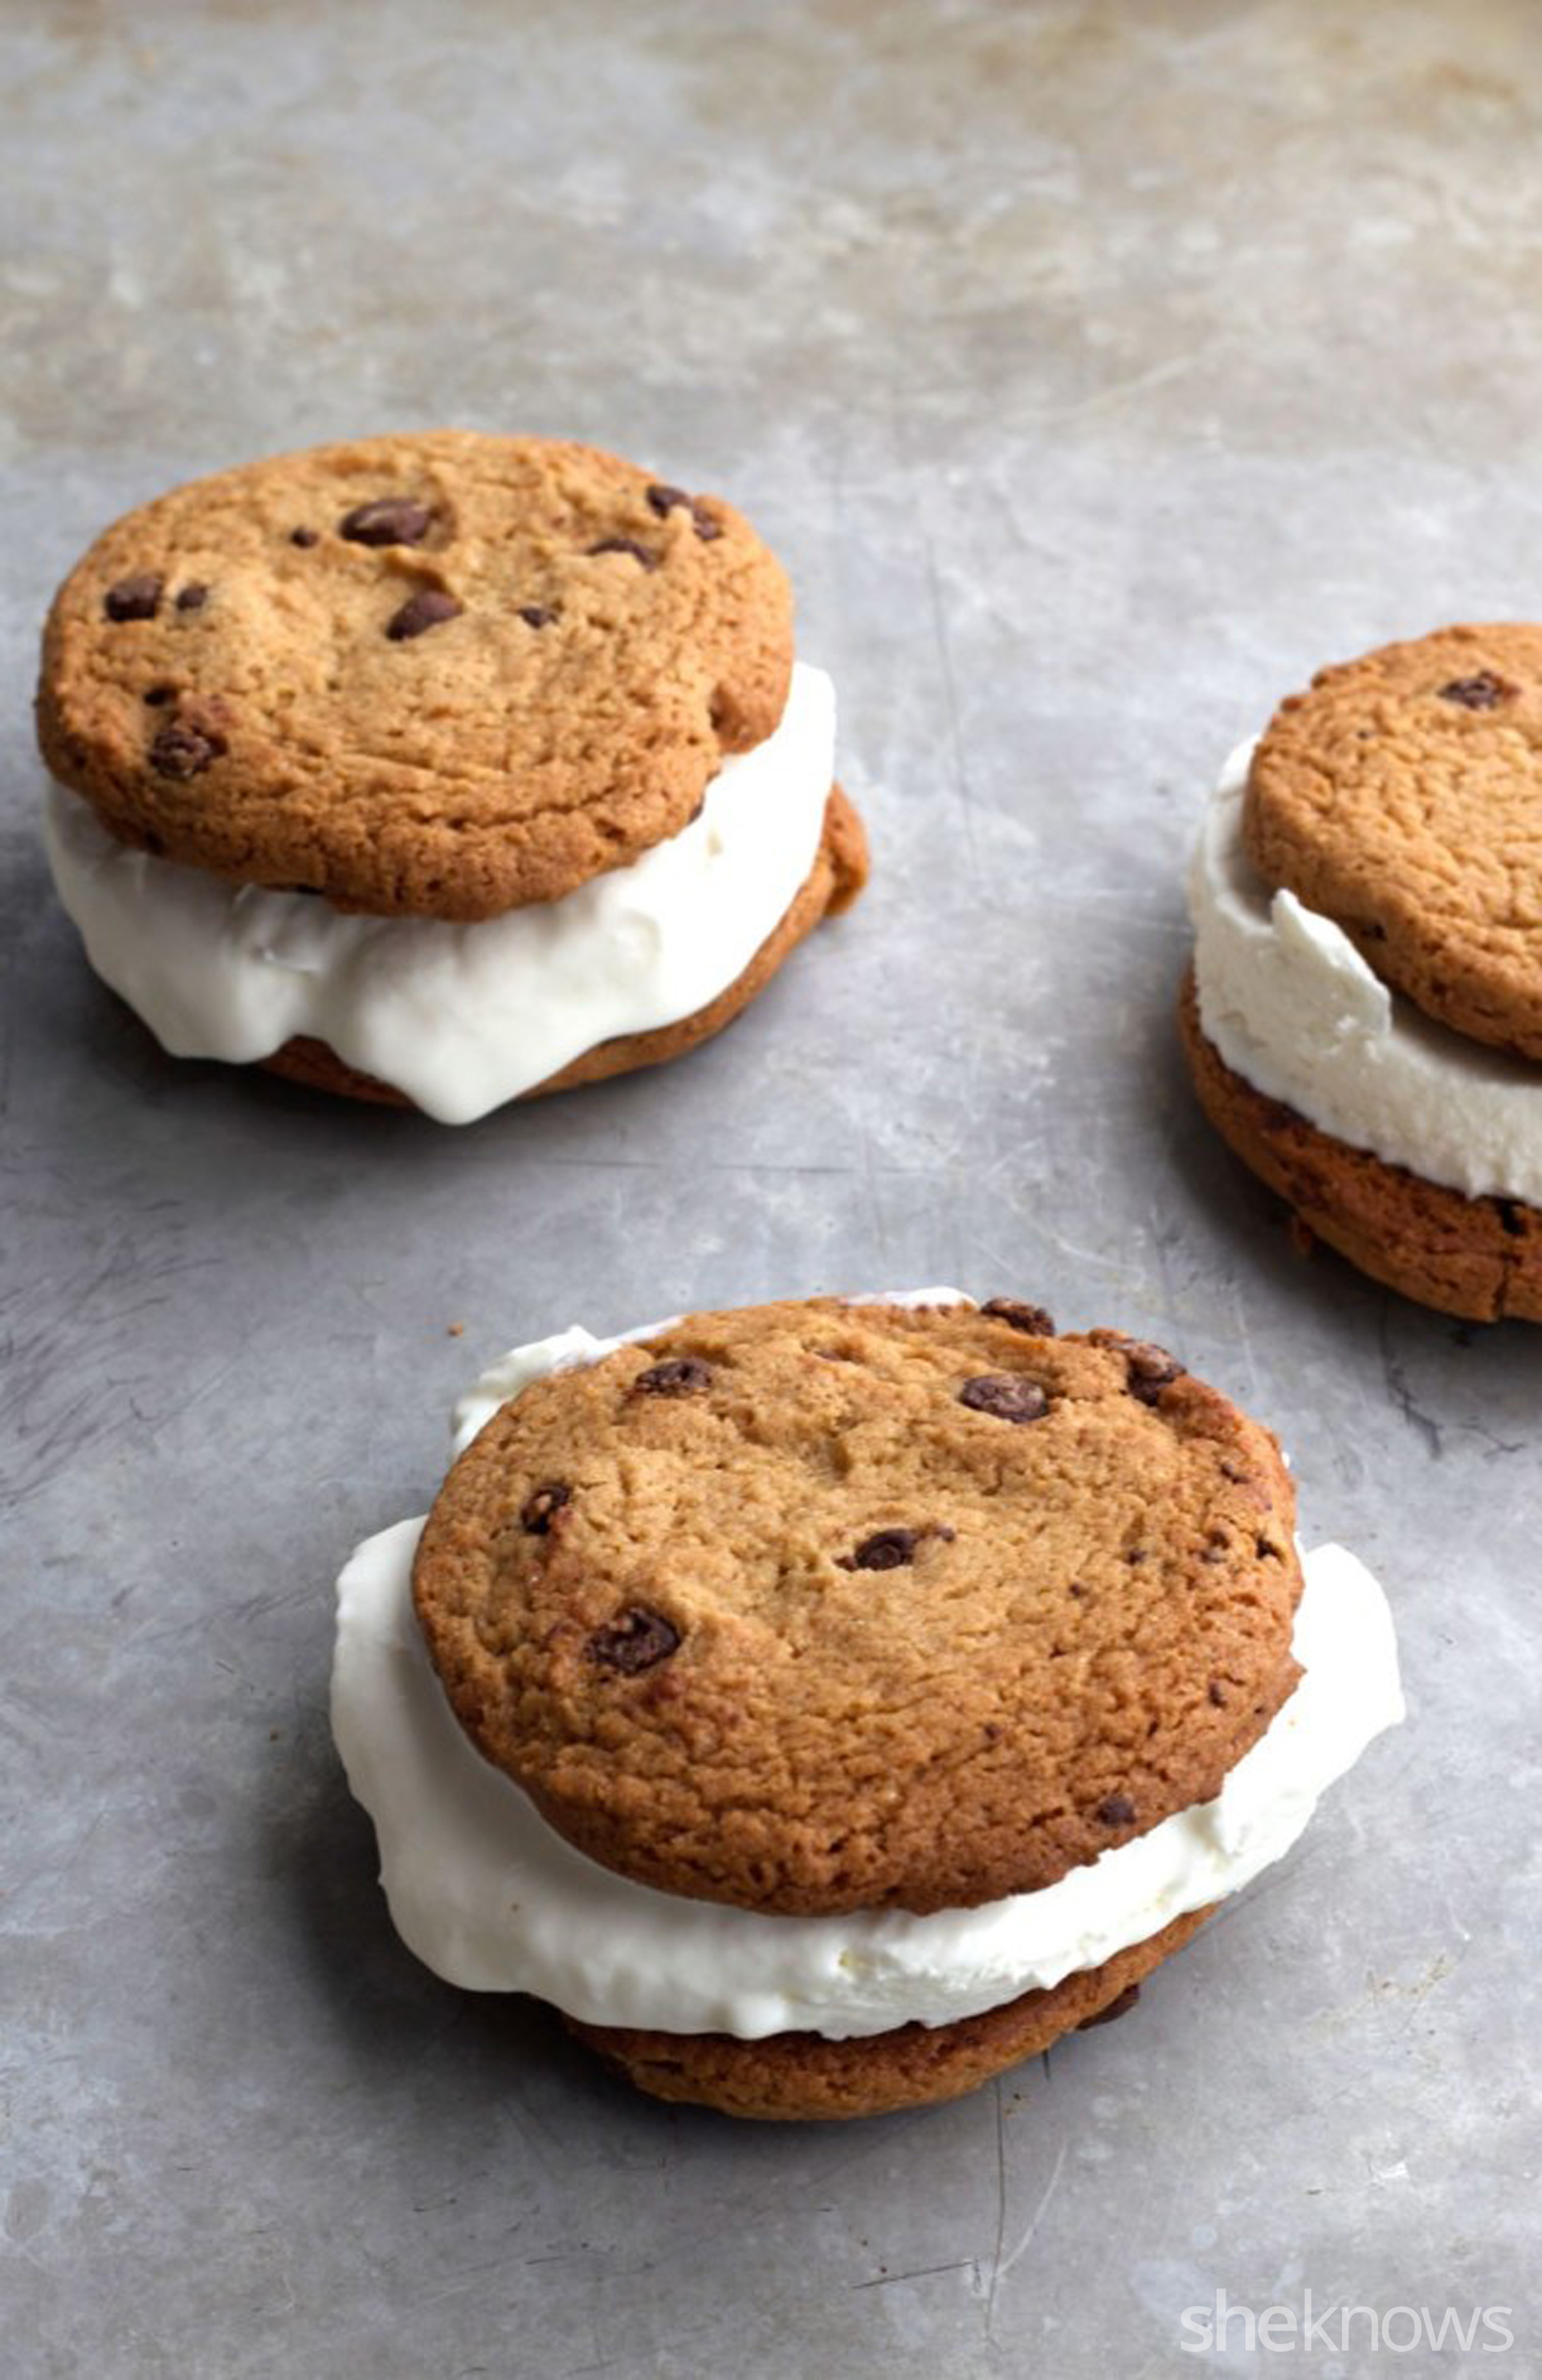 Easy homemade soft serve takes these ice cream sandwiches to